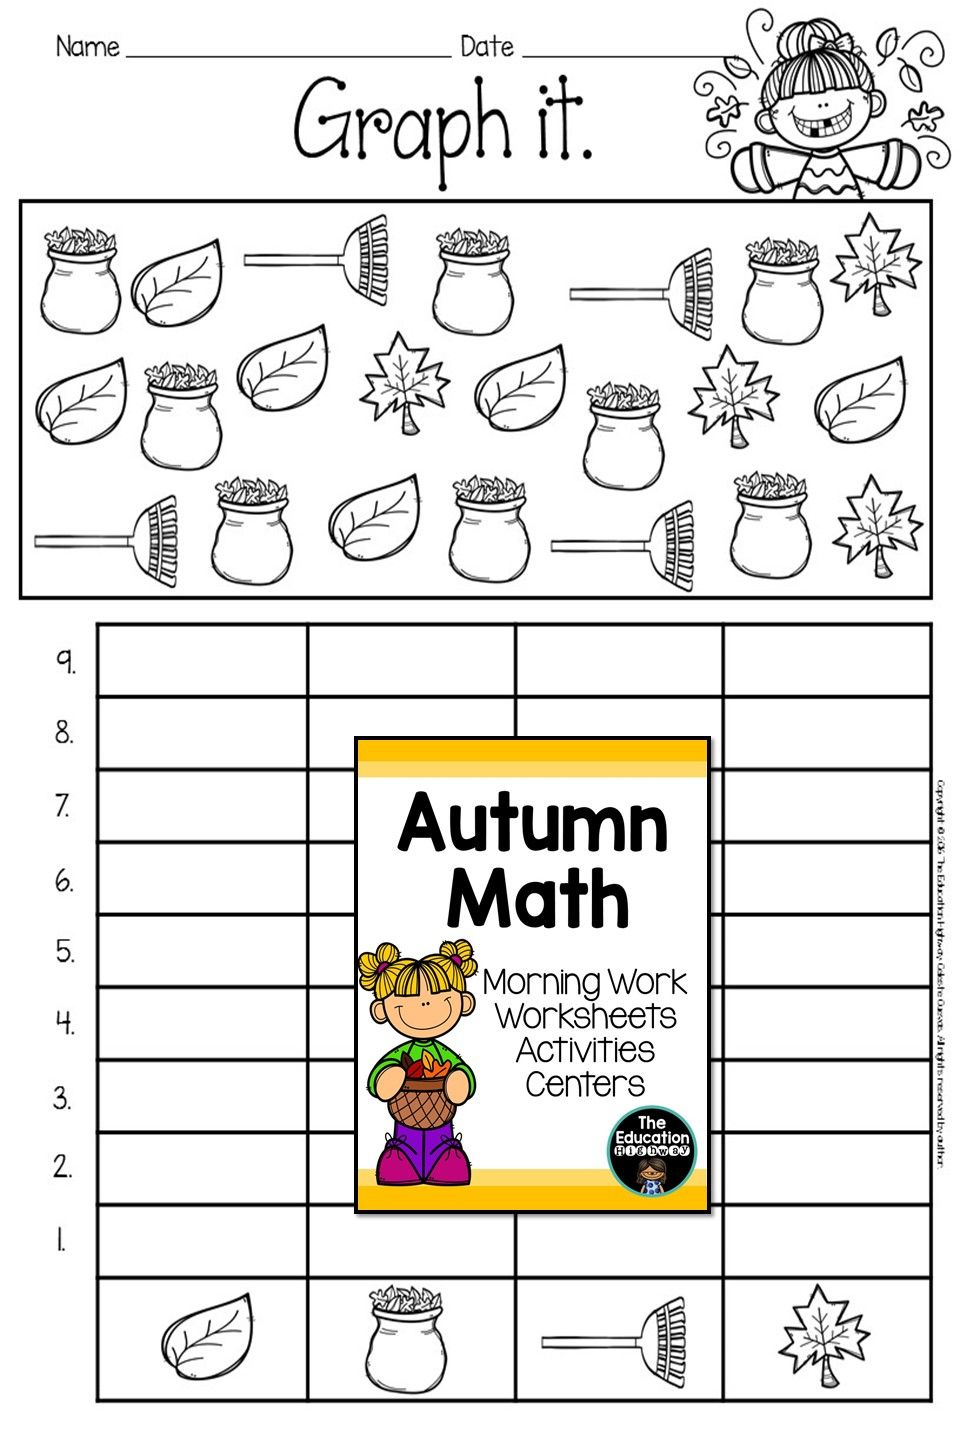 Graphing With Autumn Math For First And Second Graders Morning Work Worksheets Activiti Fall Math Morning Work Kindergarten Free Kindergarten Math Worksheets